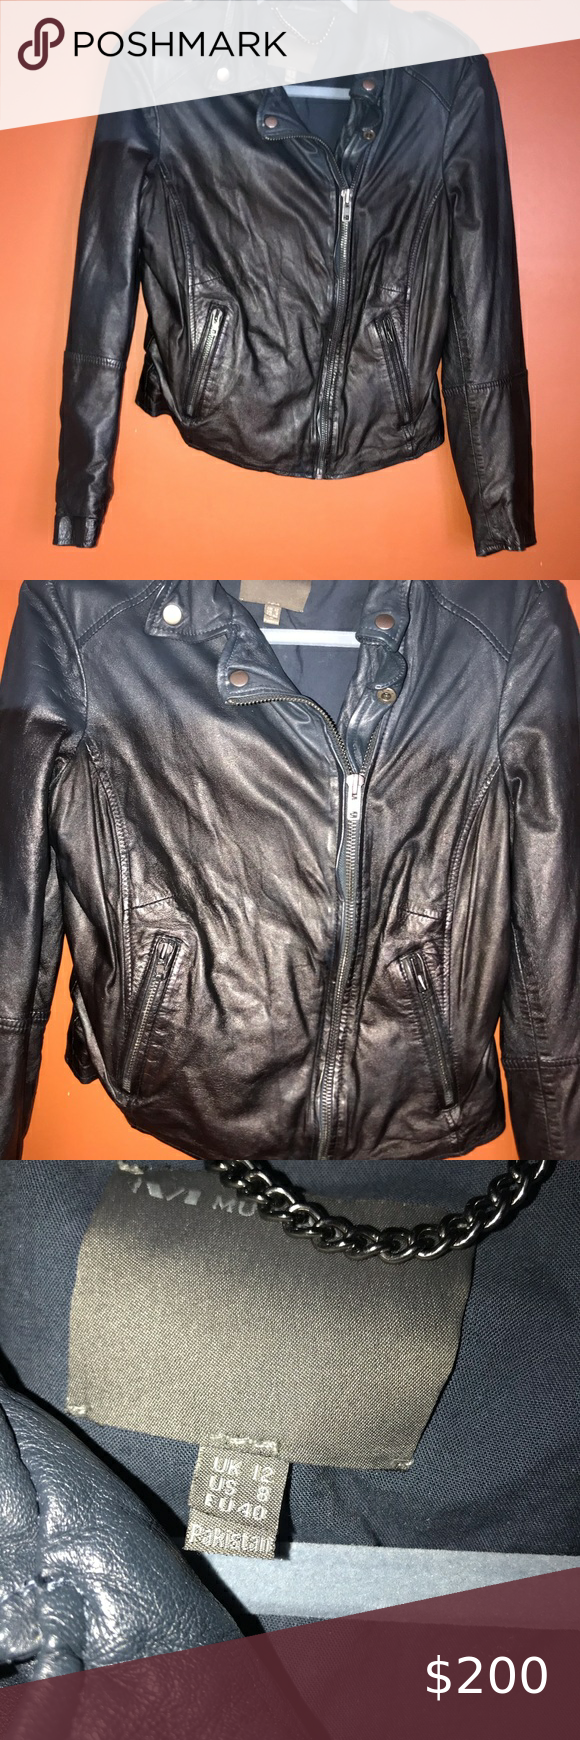 Muuba ombré leather jacket in 2020 Leather jacket